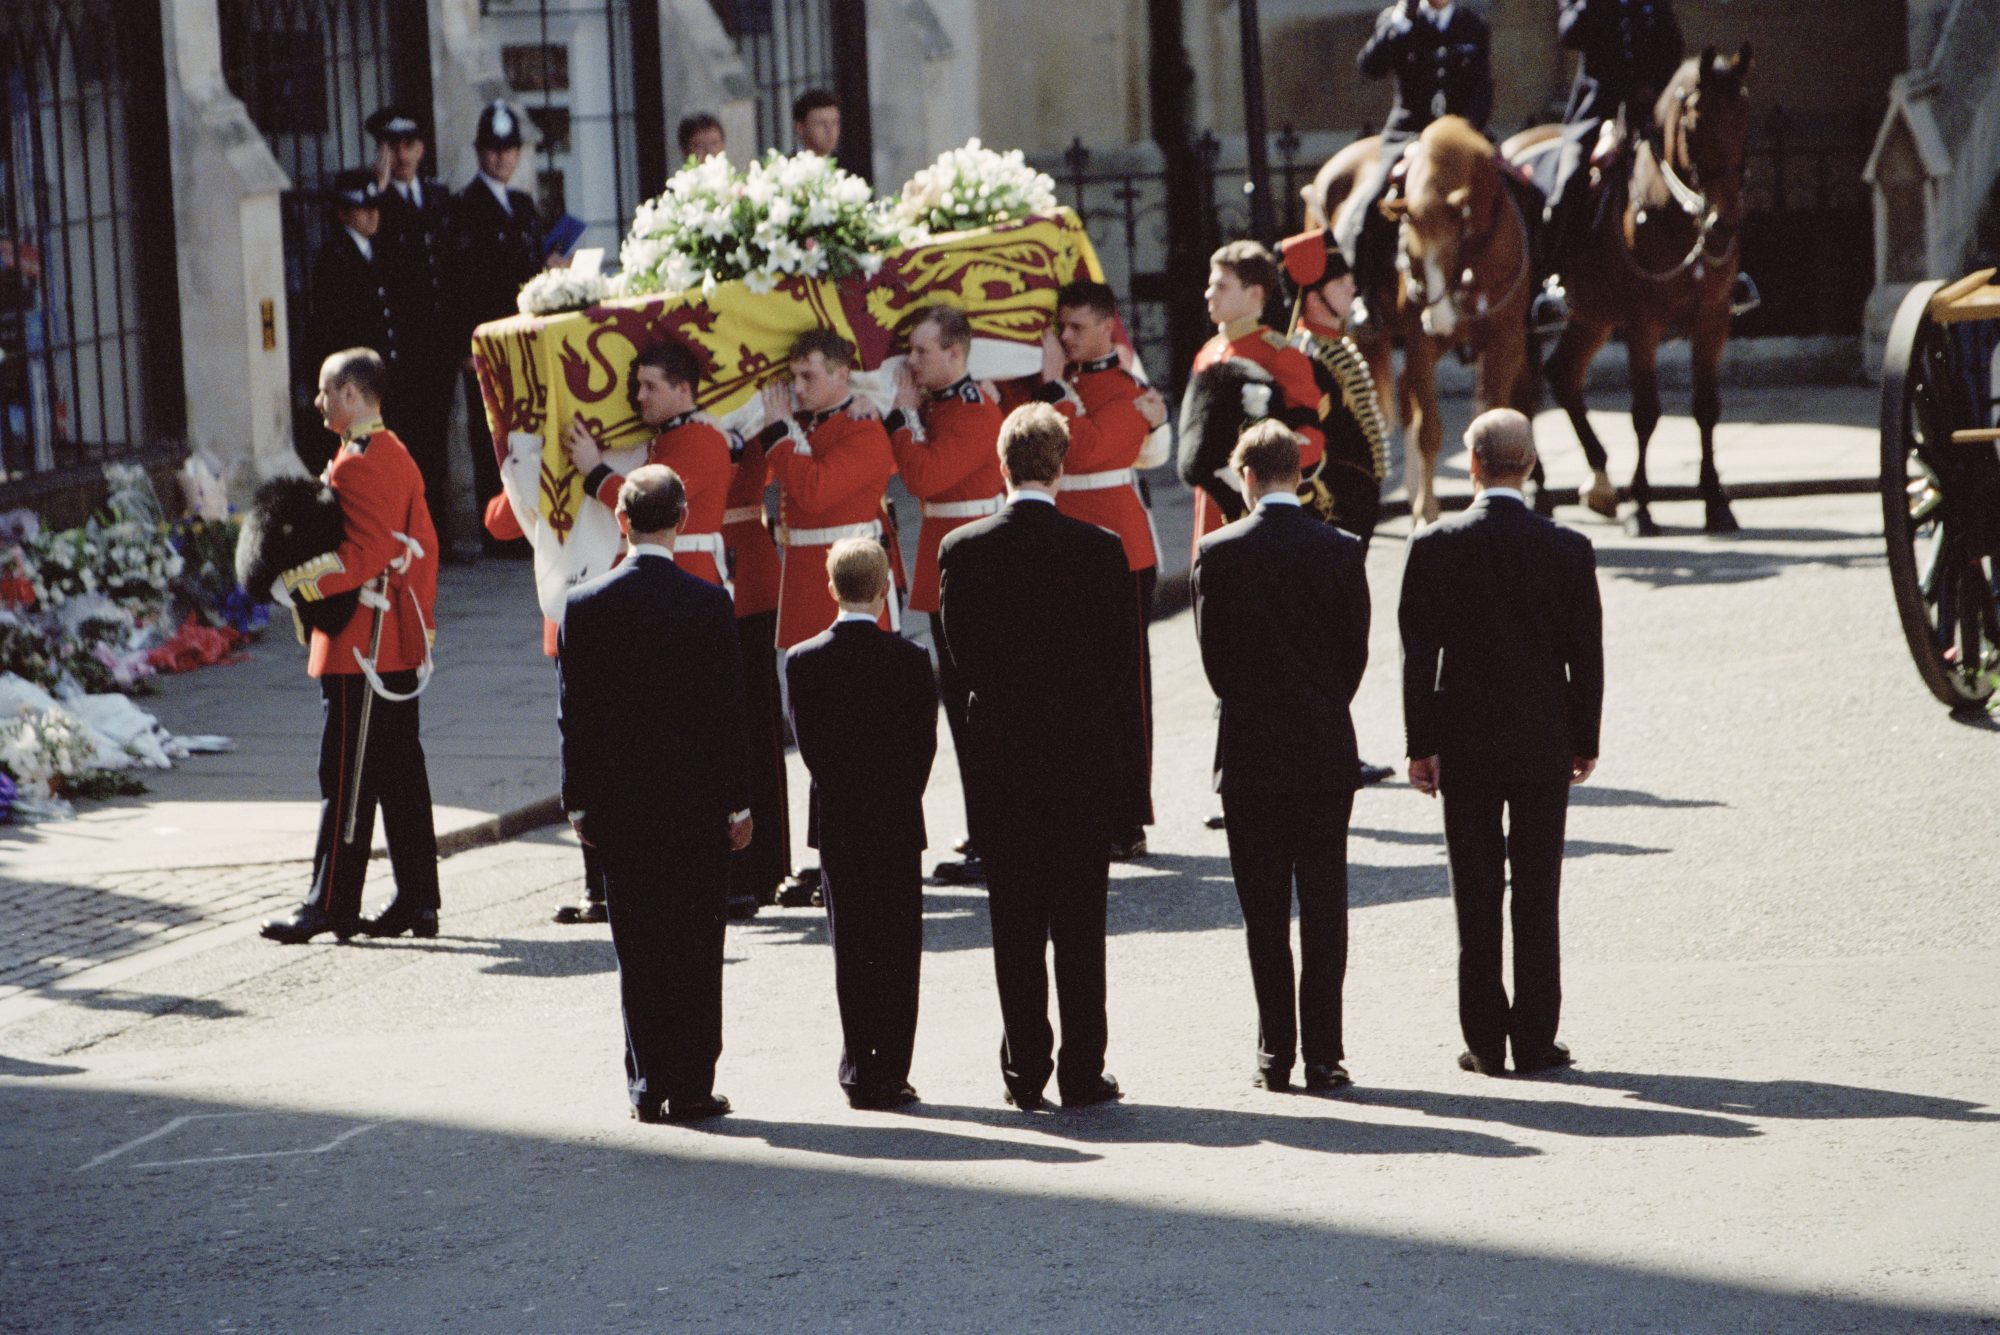 Diana's Funeral